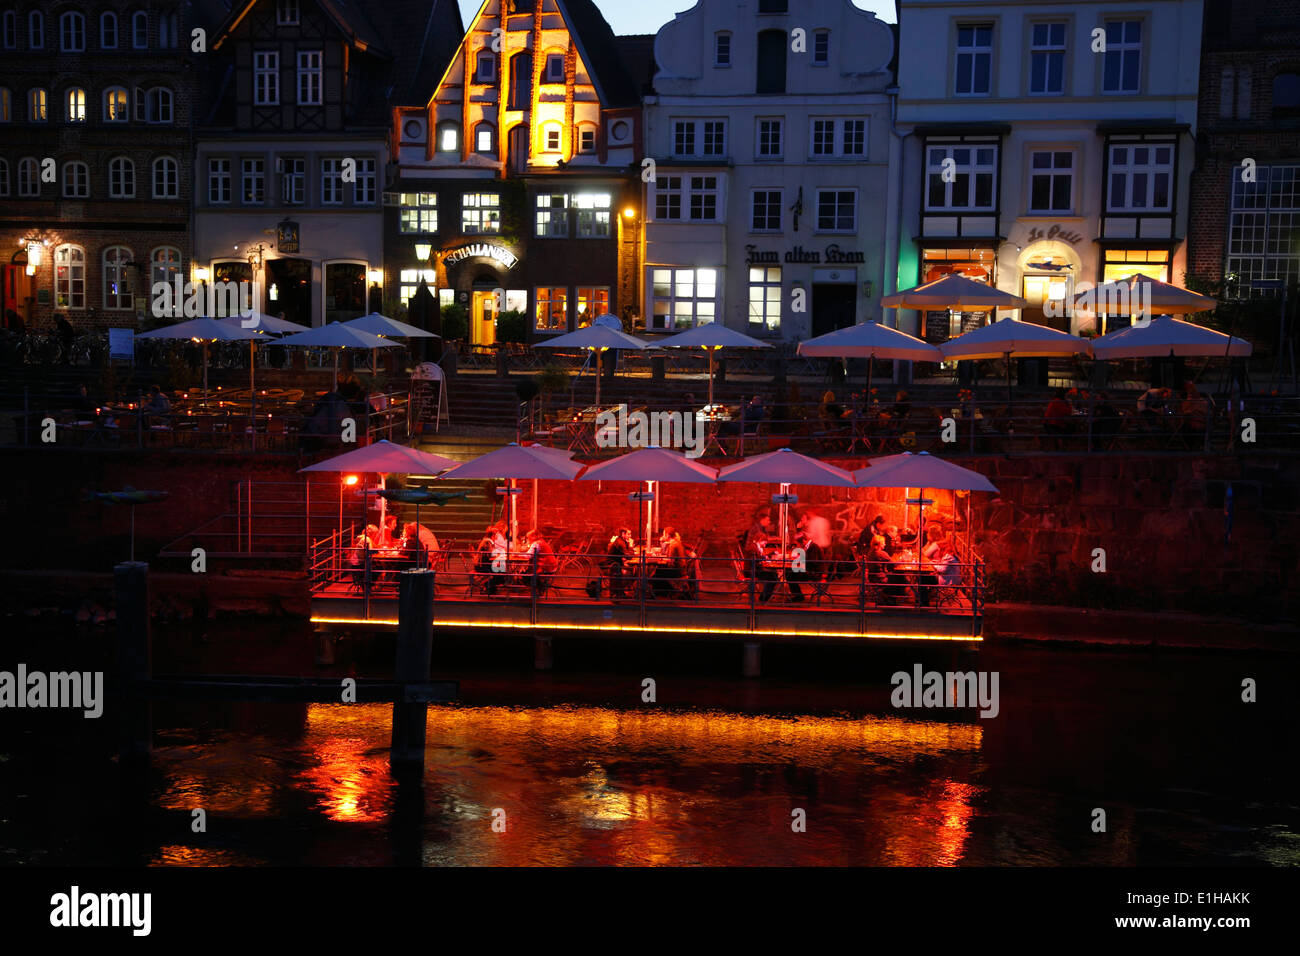 Nightlife at Stintmarkt,  Lueneburg, Lüneburg, Lower Saxony, Germany, Europe - Stock Image